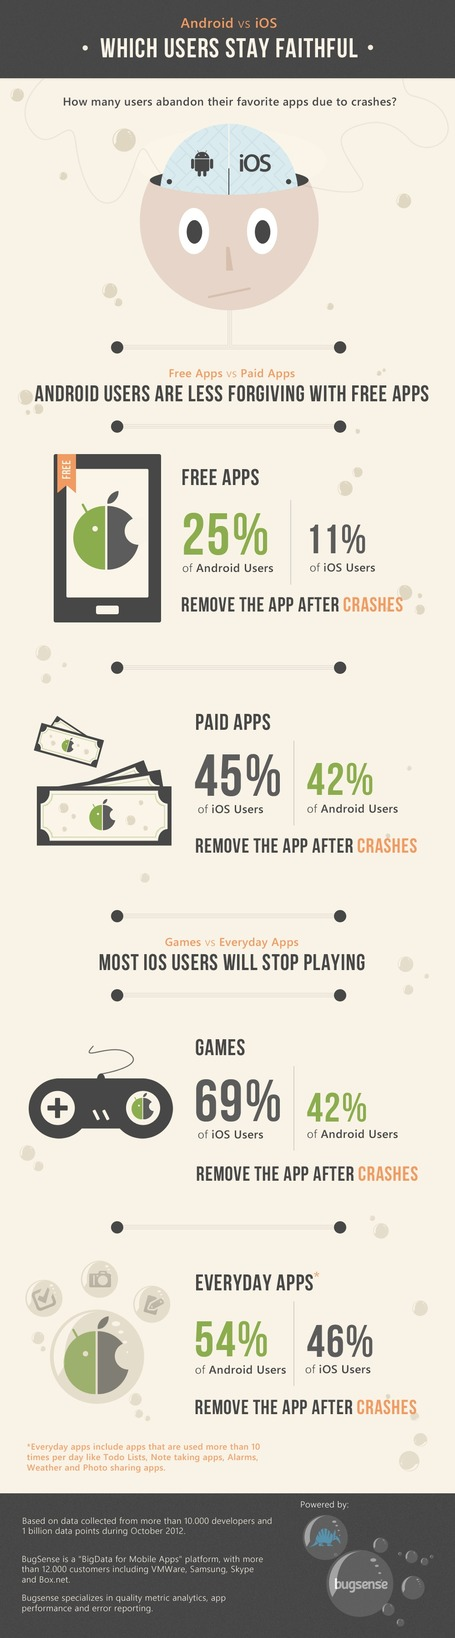 "Android vs. iOS: Loyalty Among Users [Infographic] | ""Social Media"" 